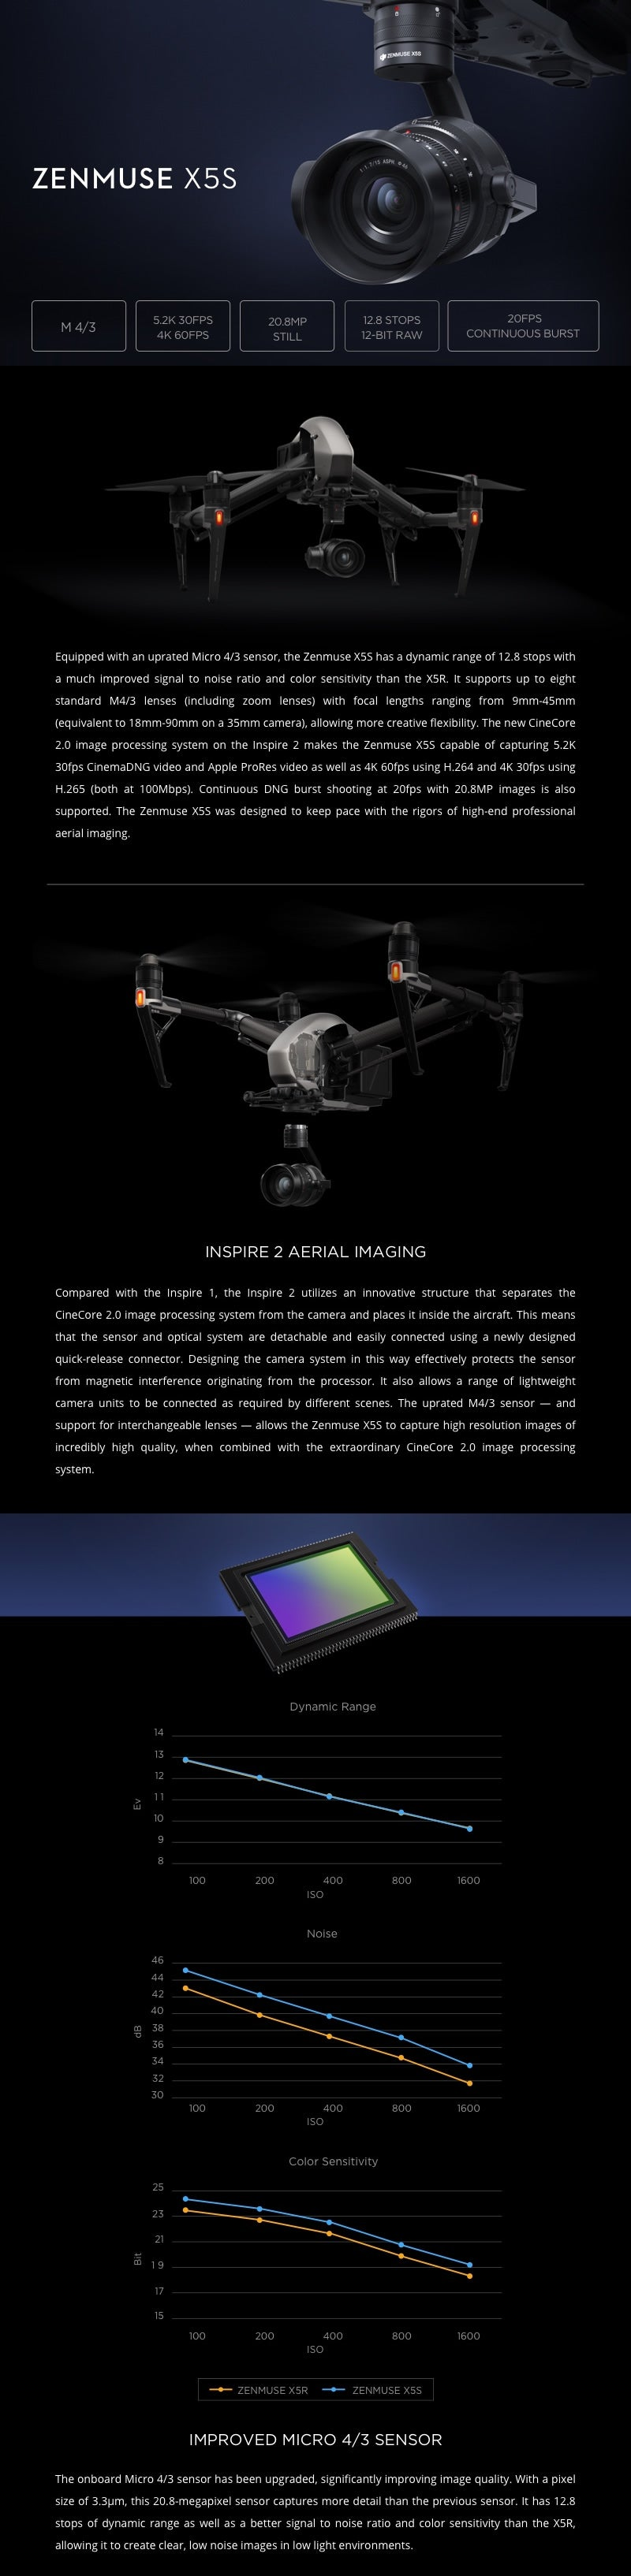 Zenmuse X5s Description 1